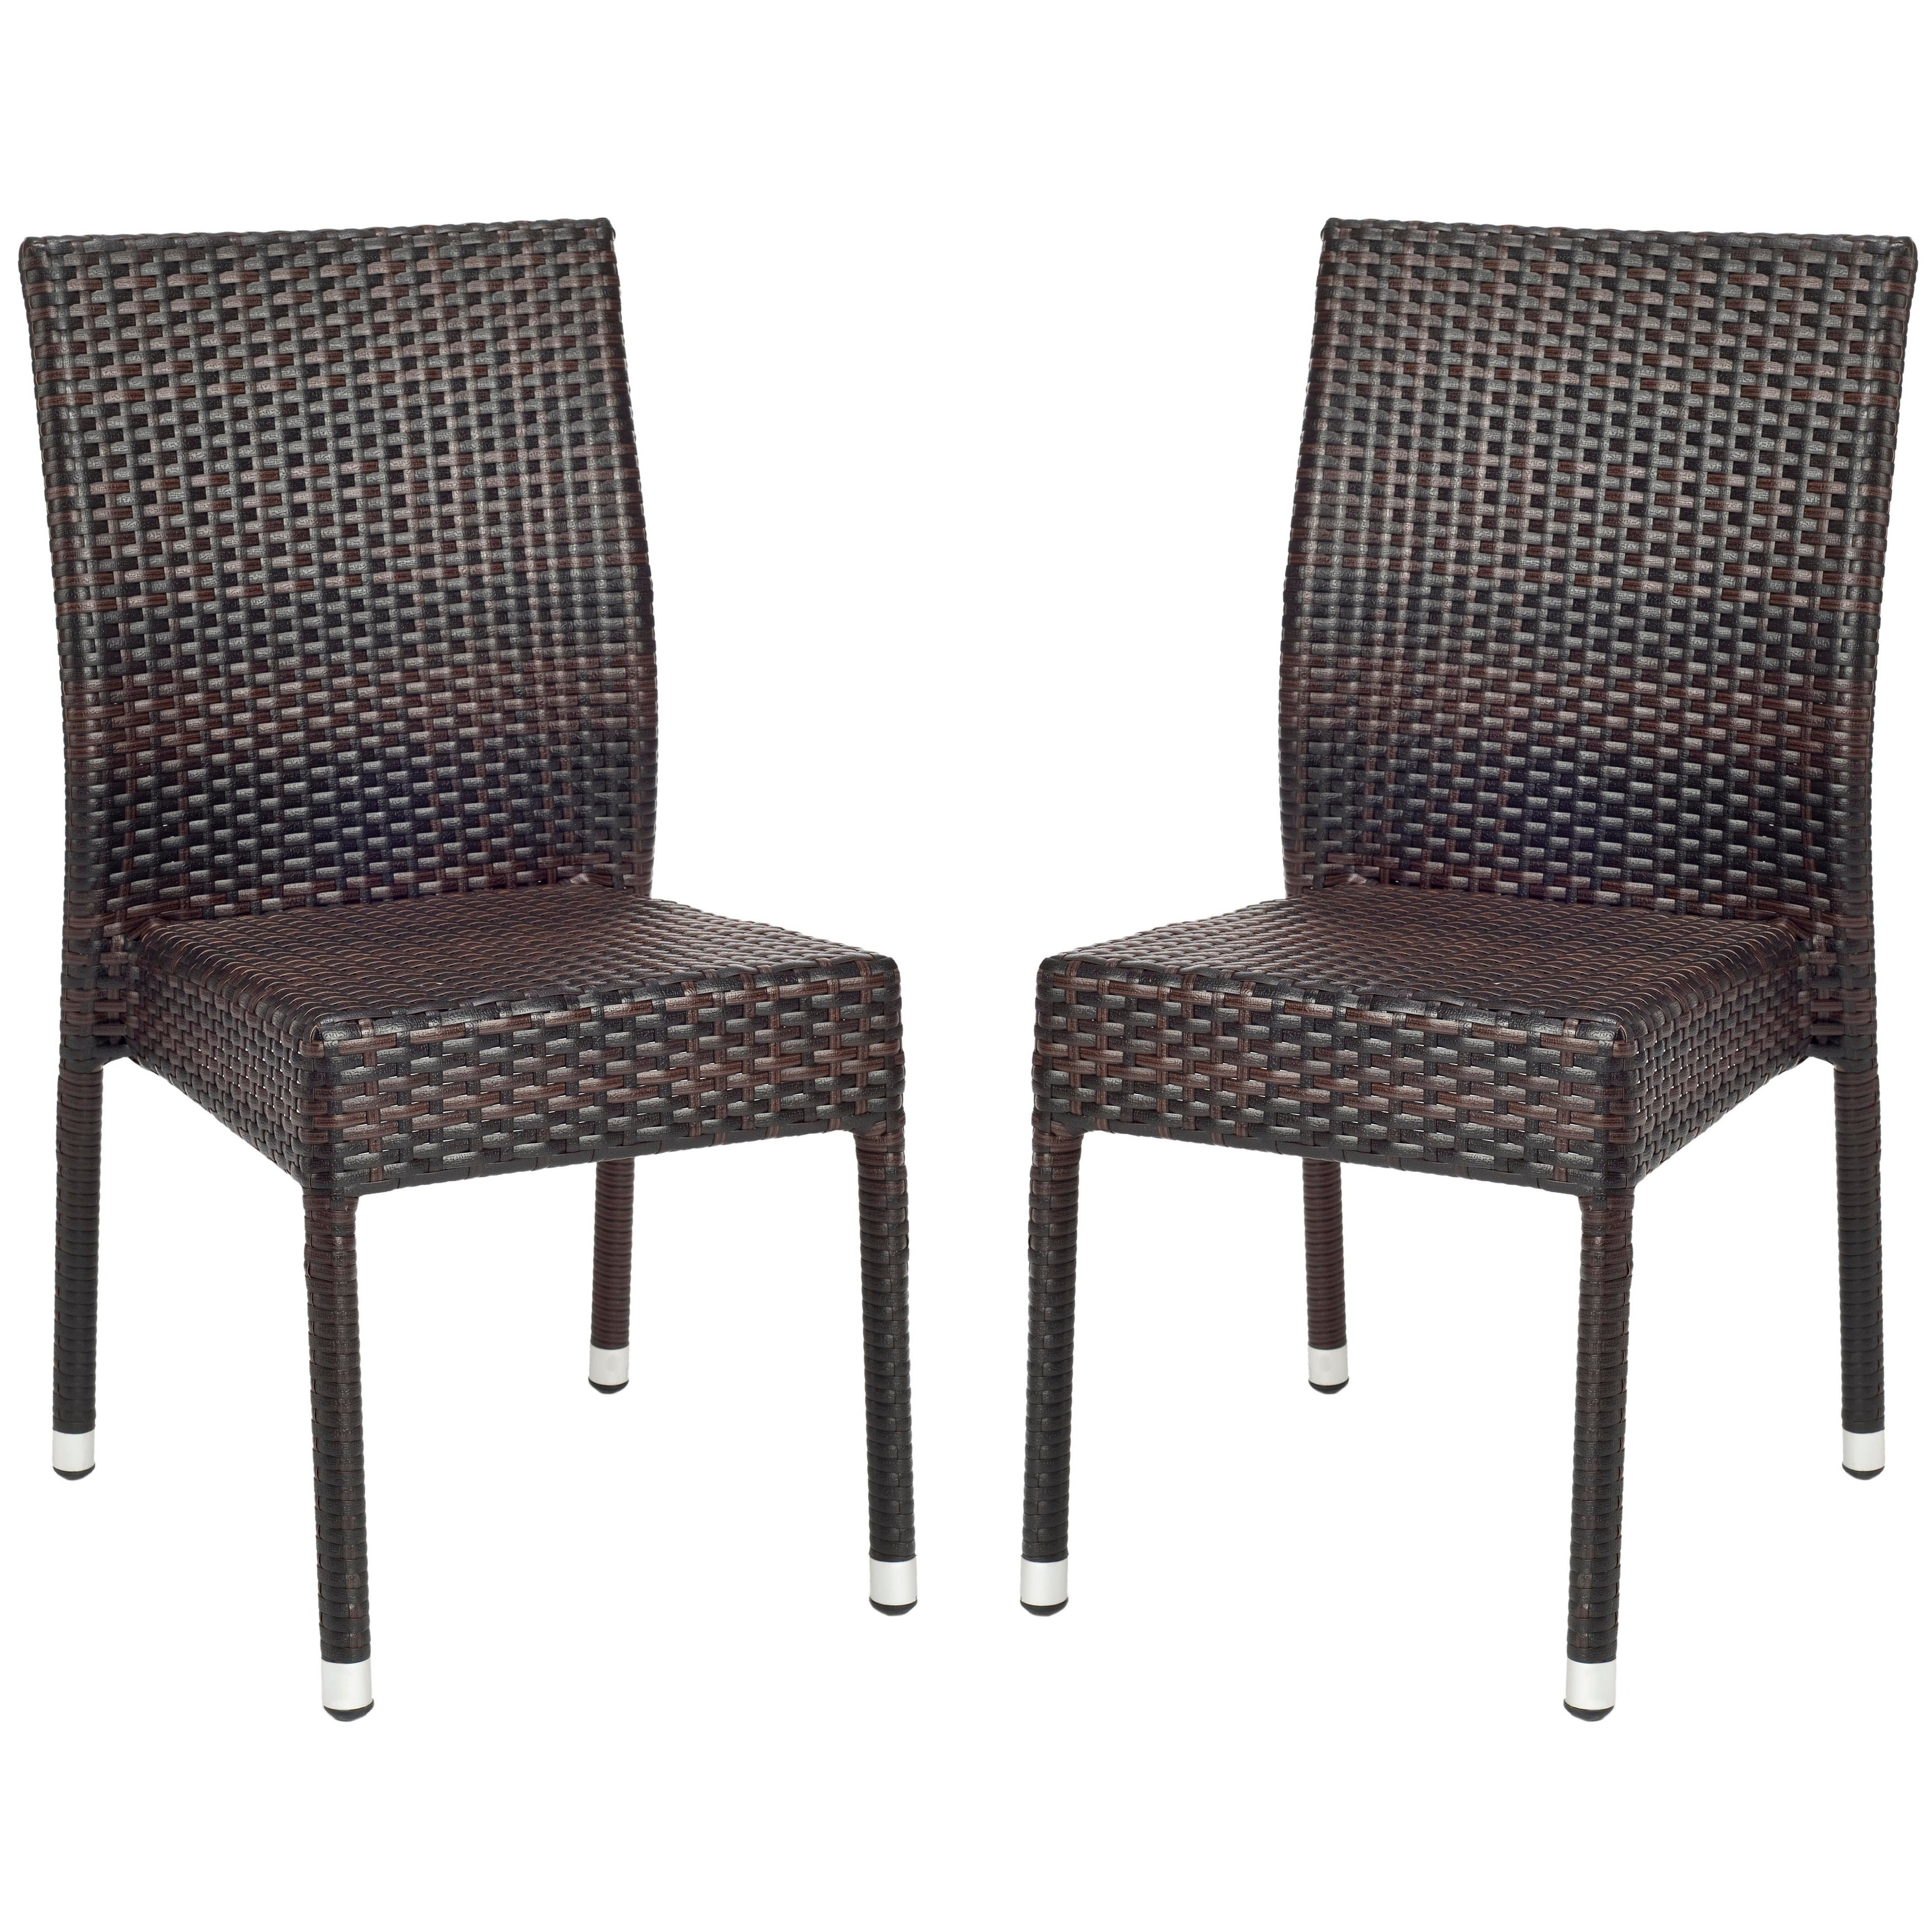 Stackable Outdoor Chair PVC Faux Wicker Seat Steel Frame Weather Resistant  (2)